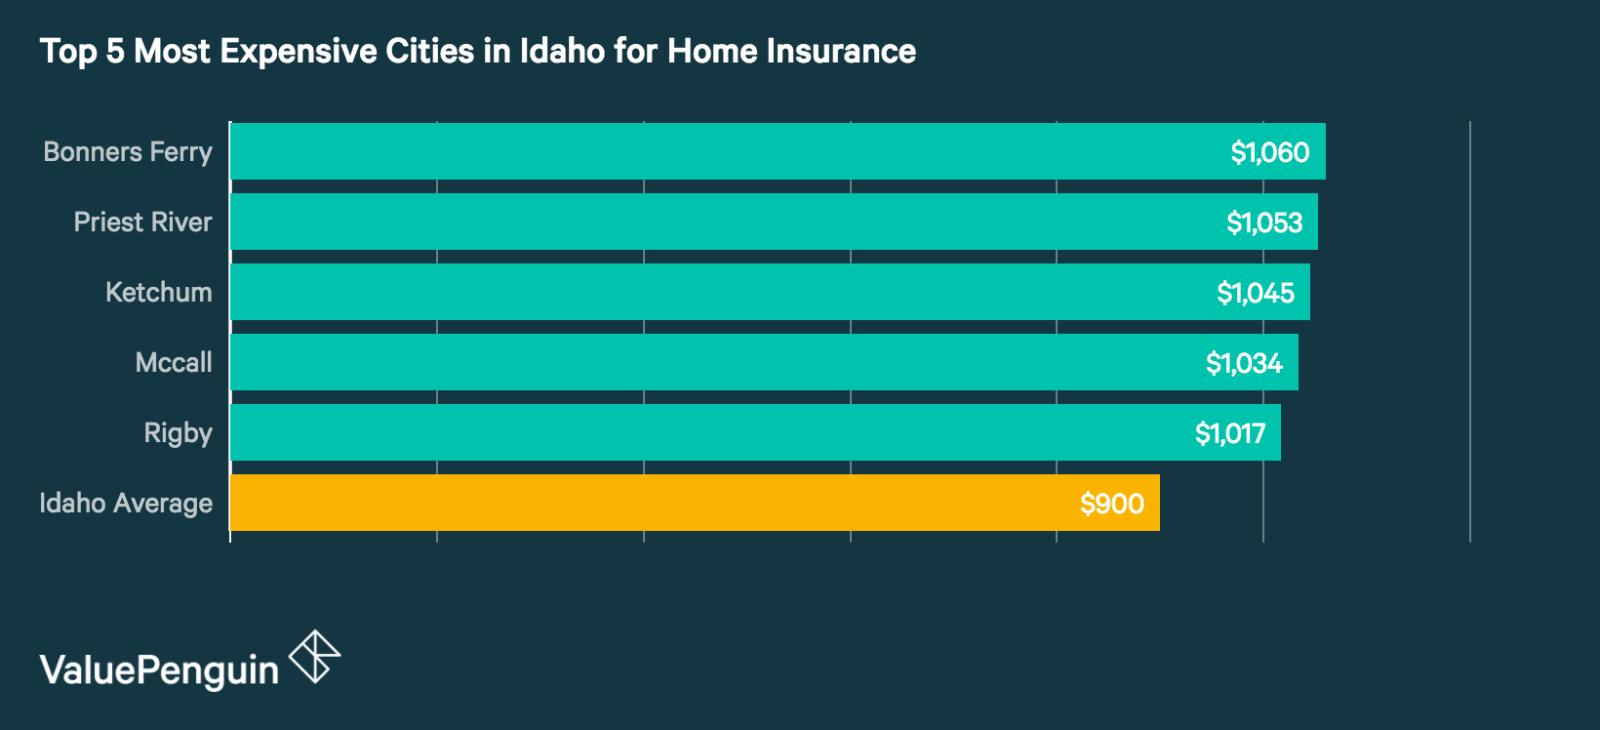 Top 5 Most Expensive Cities in Idaho for Homeowners Insurance